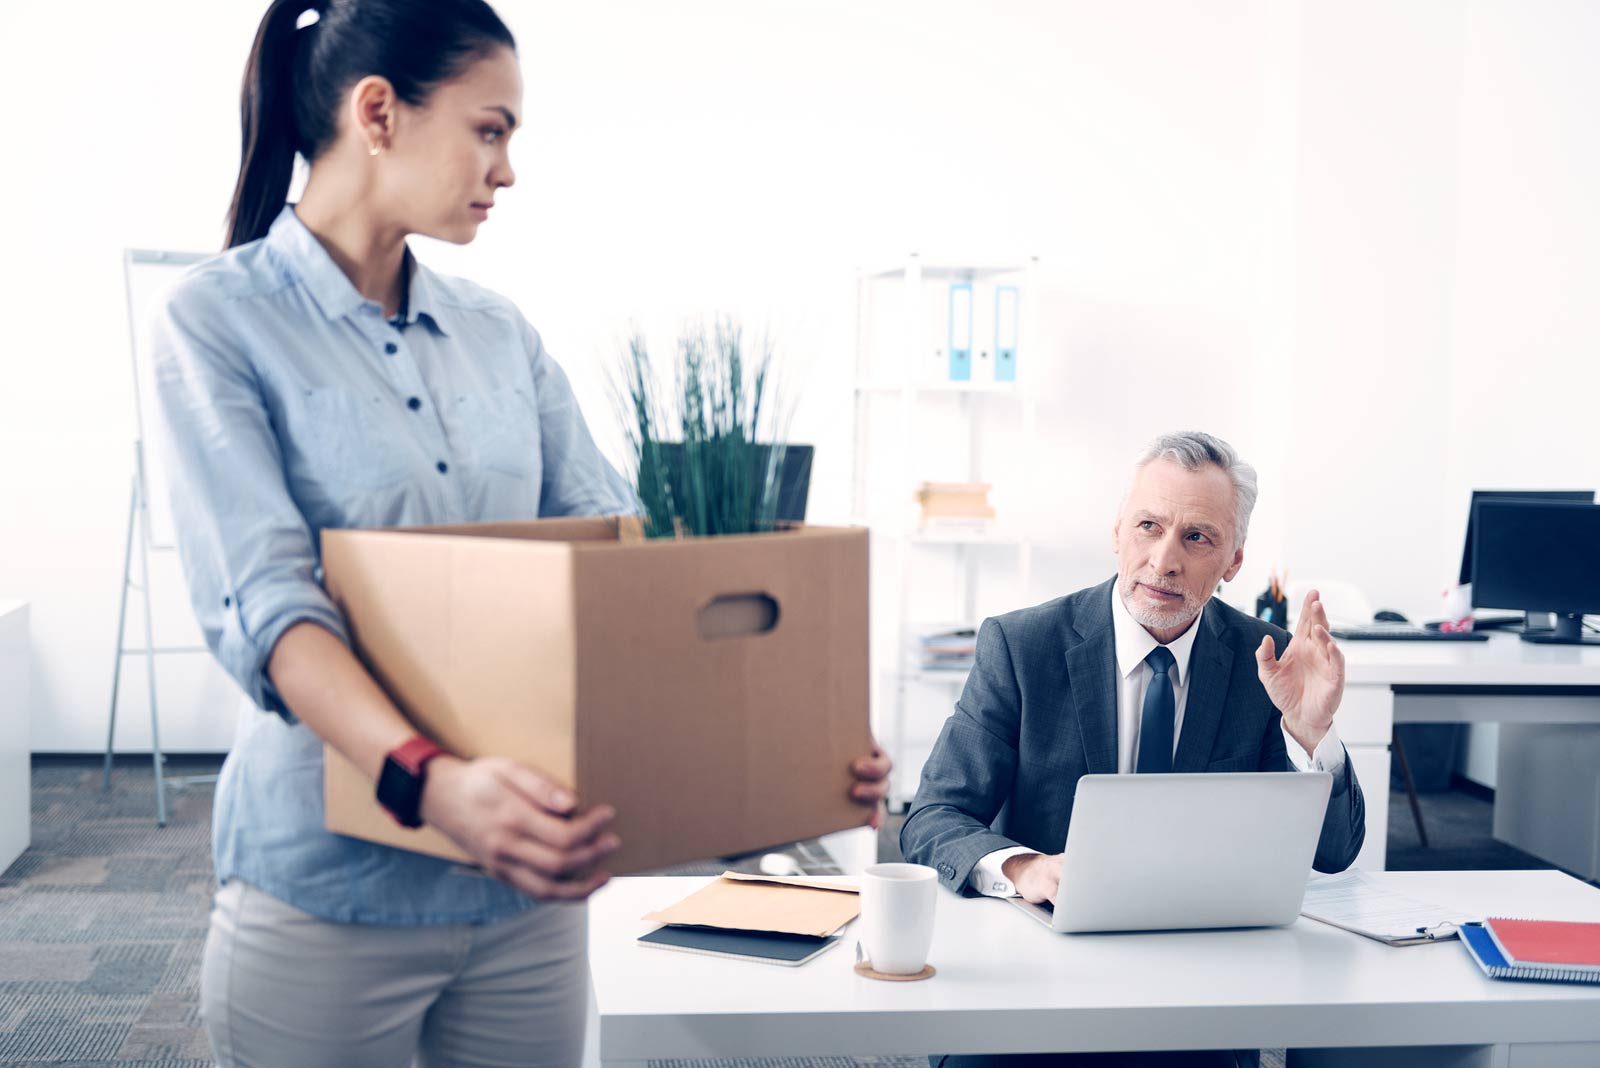 Employee quitting with office items